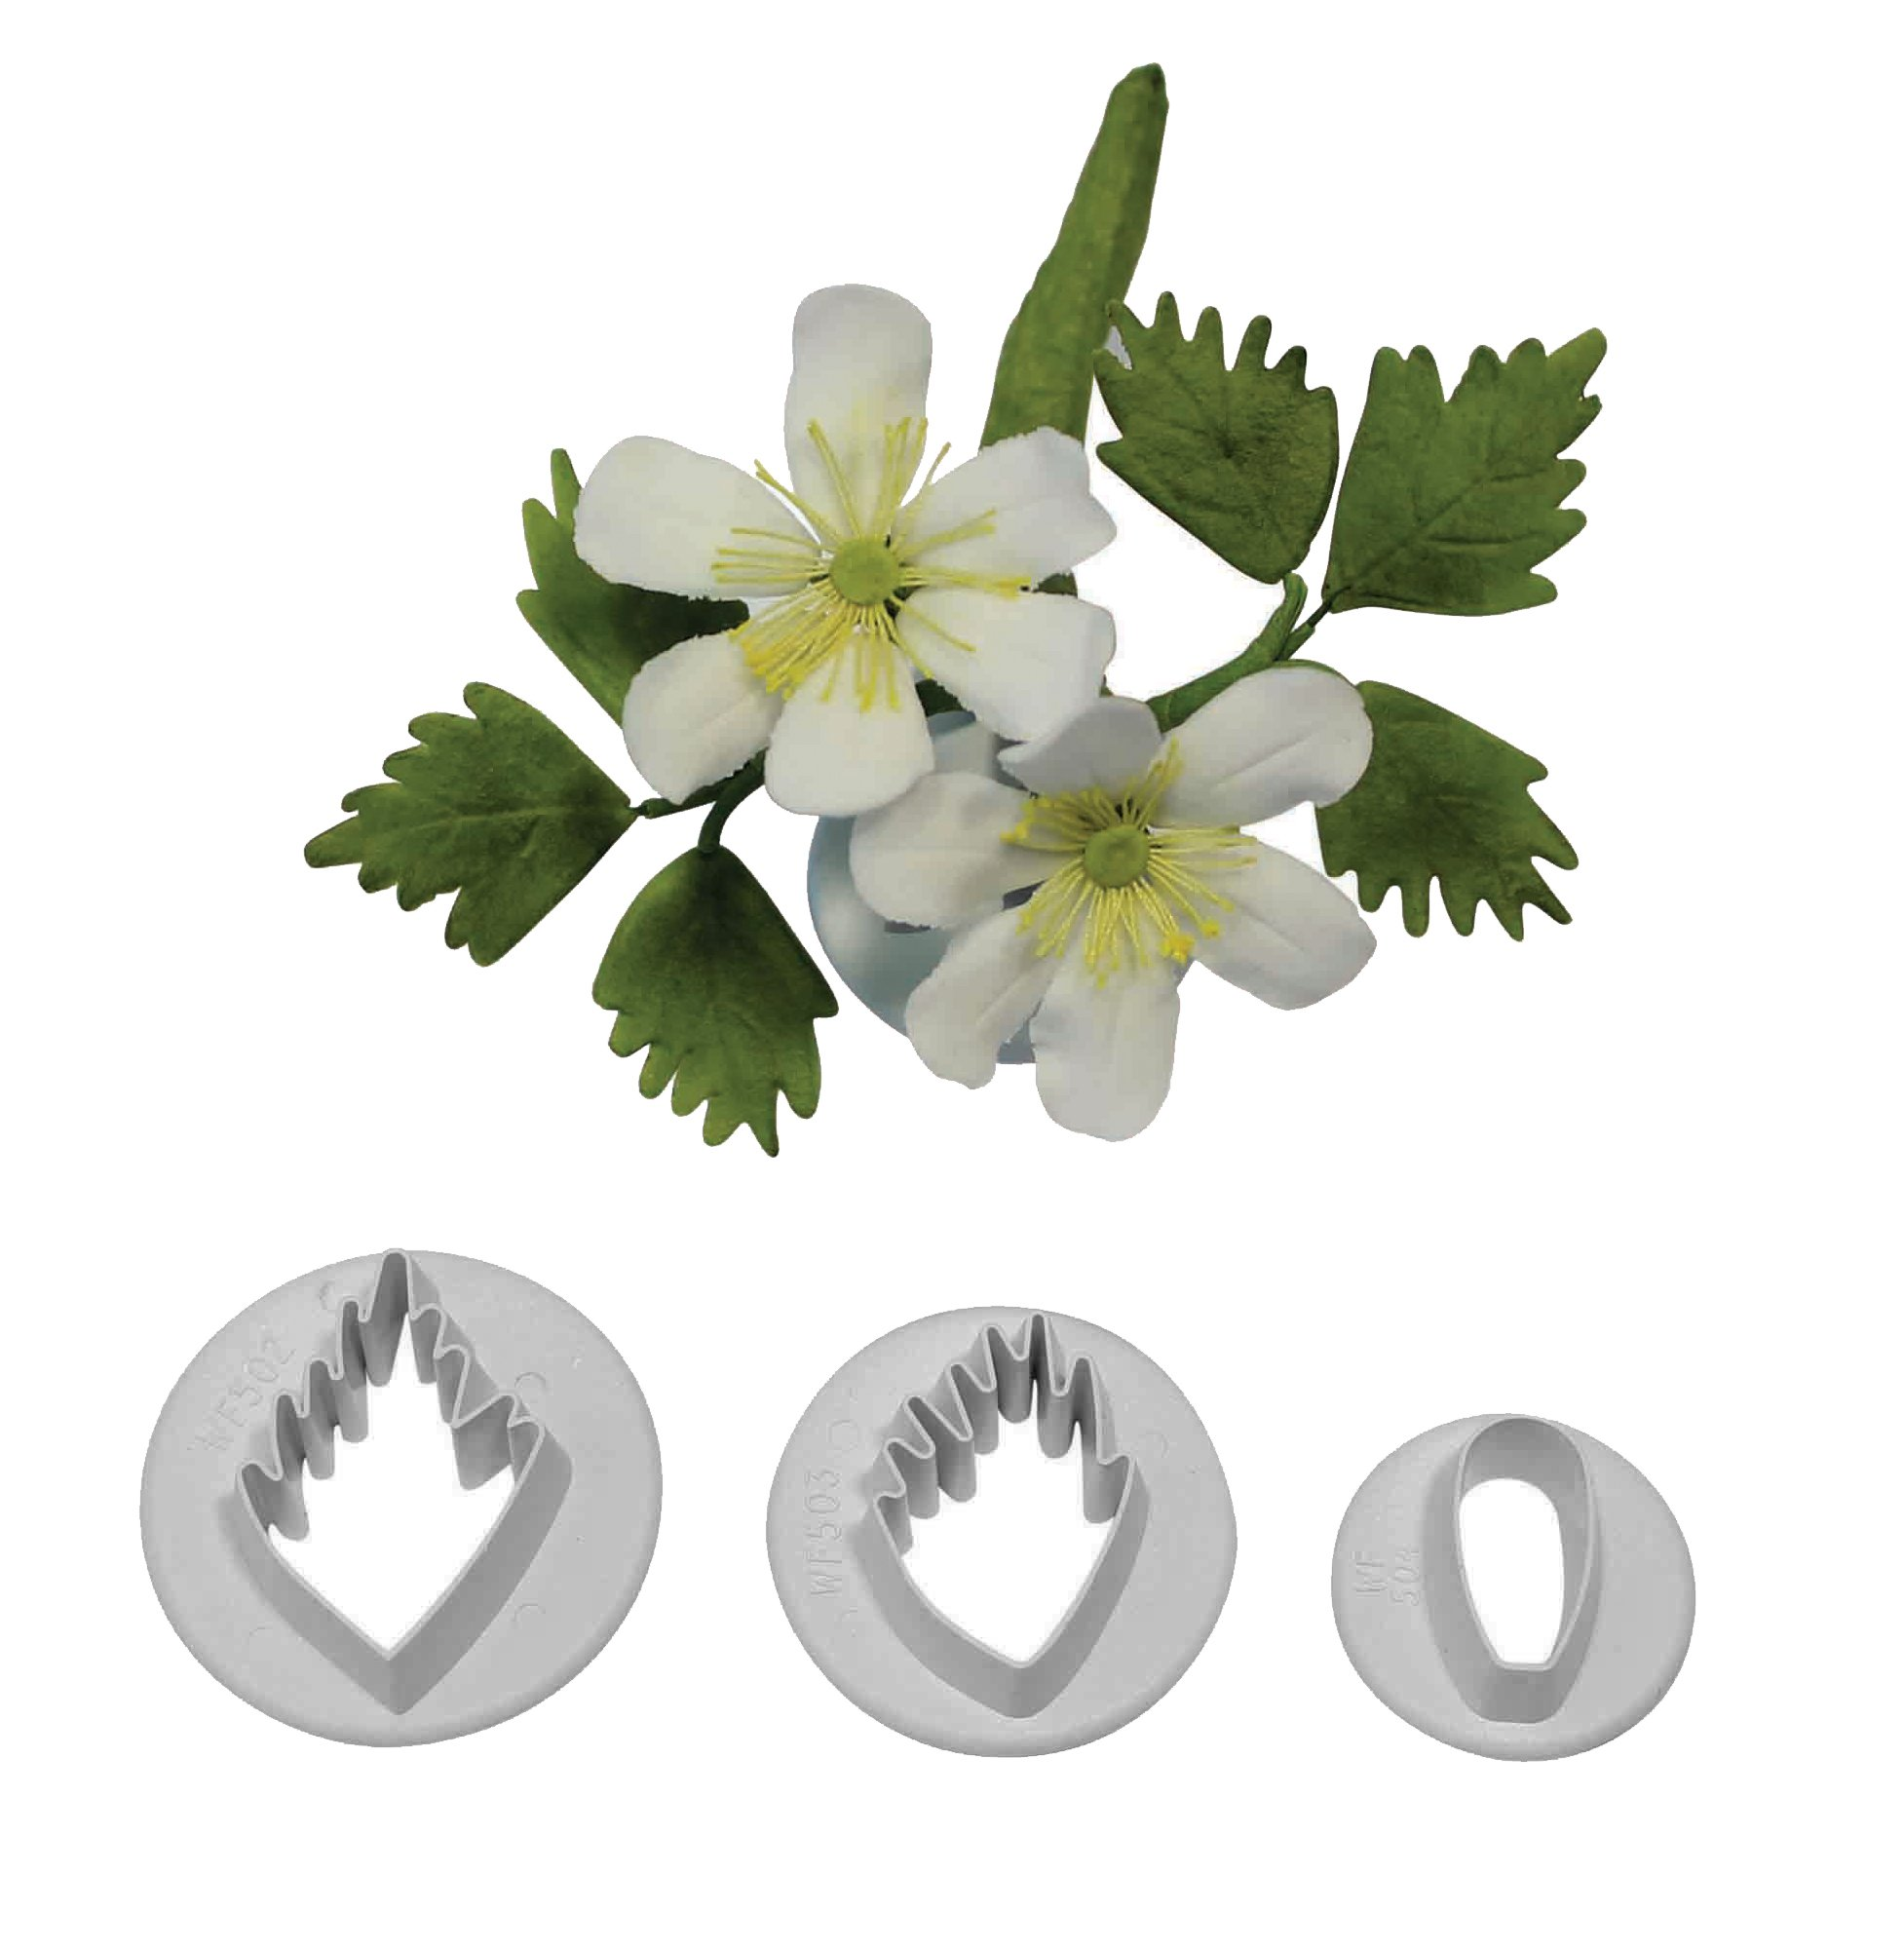 PME Wood Anemone Set of 3 cutters by PME SUGARCRAFT (Image #2)